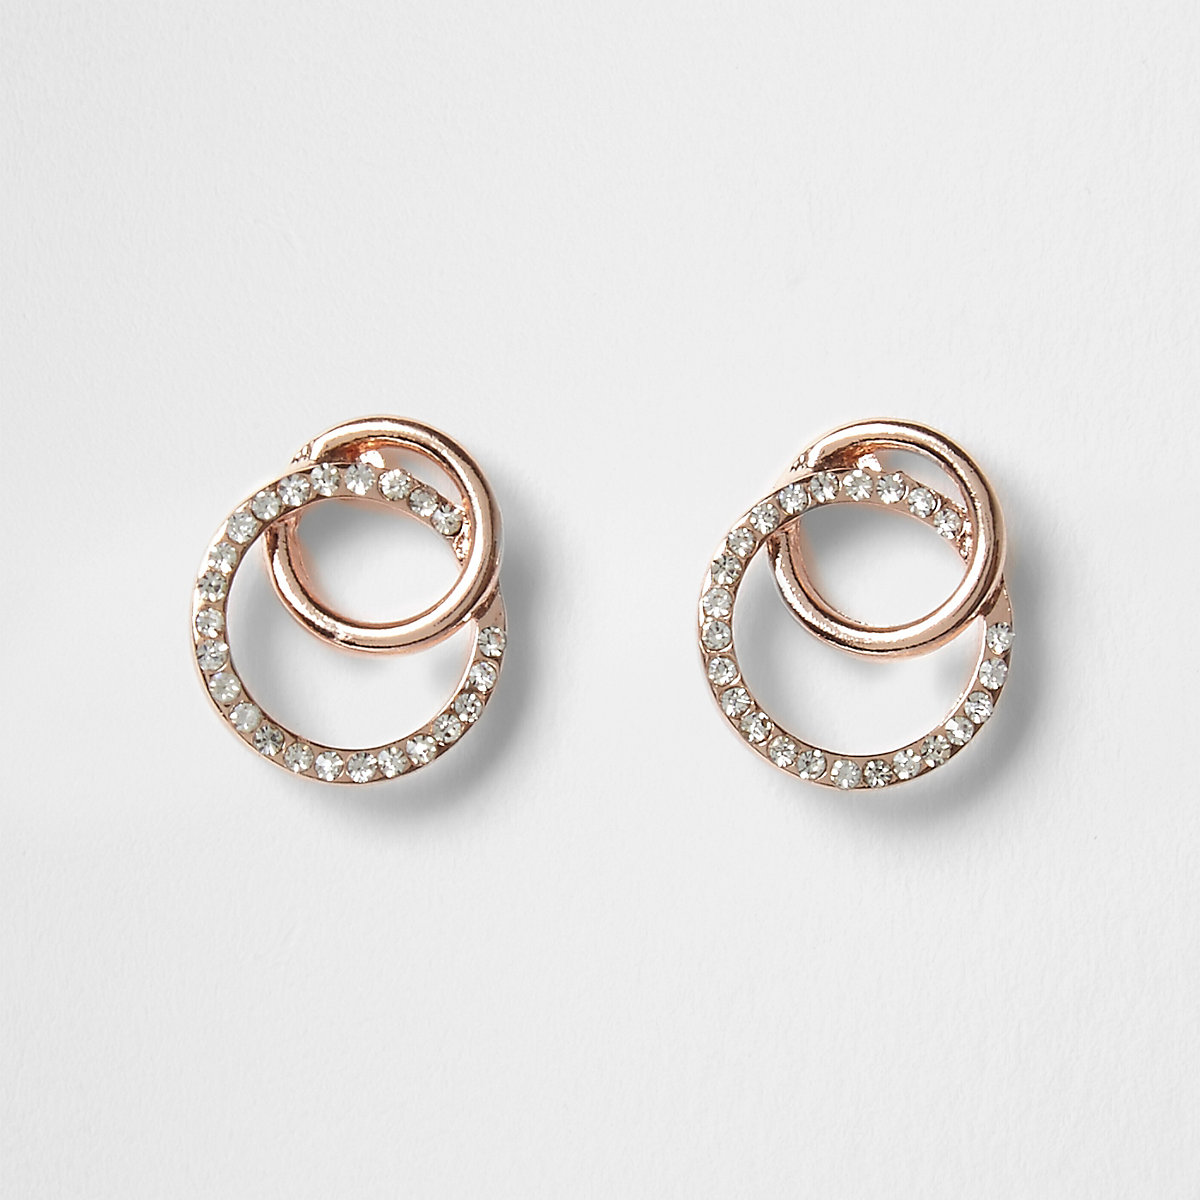 Rose gold interlocking rhinestone earrings